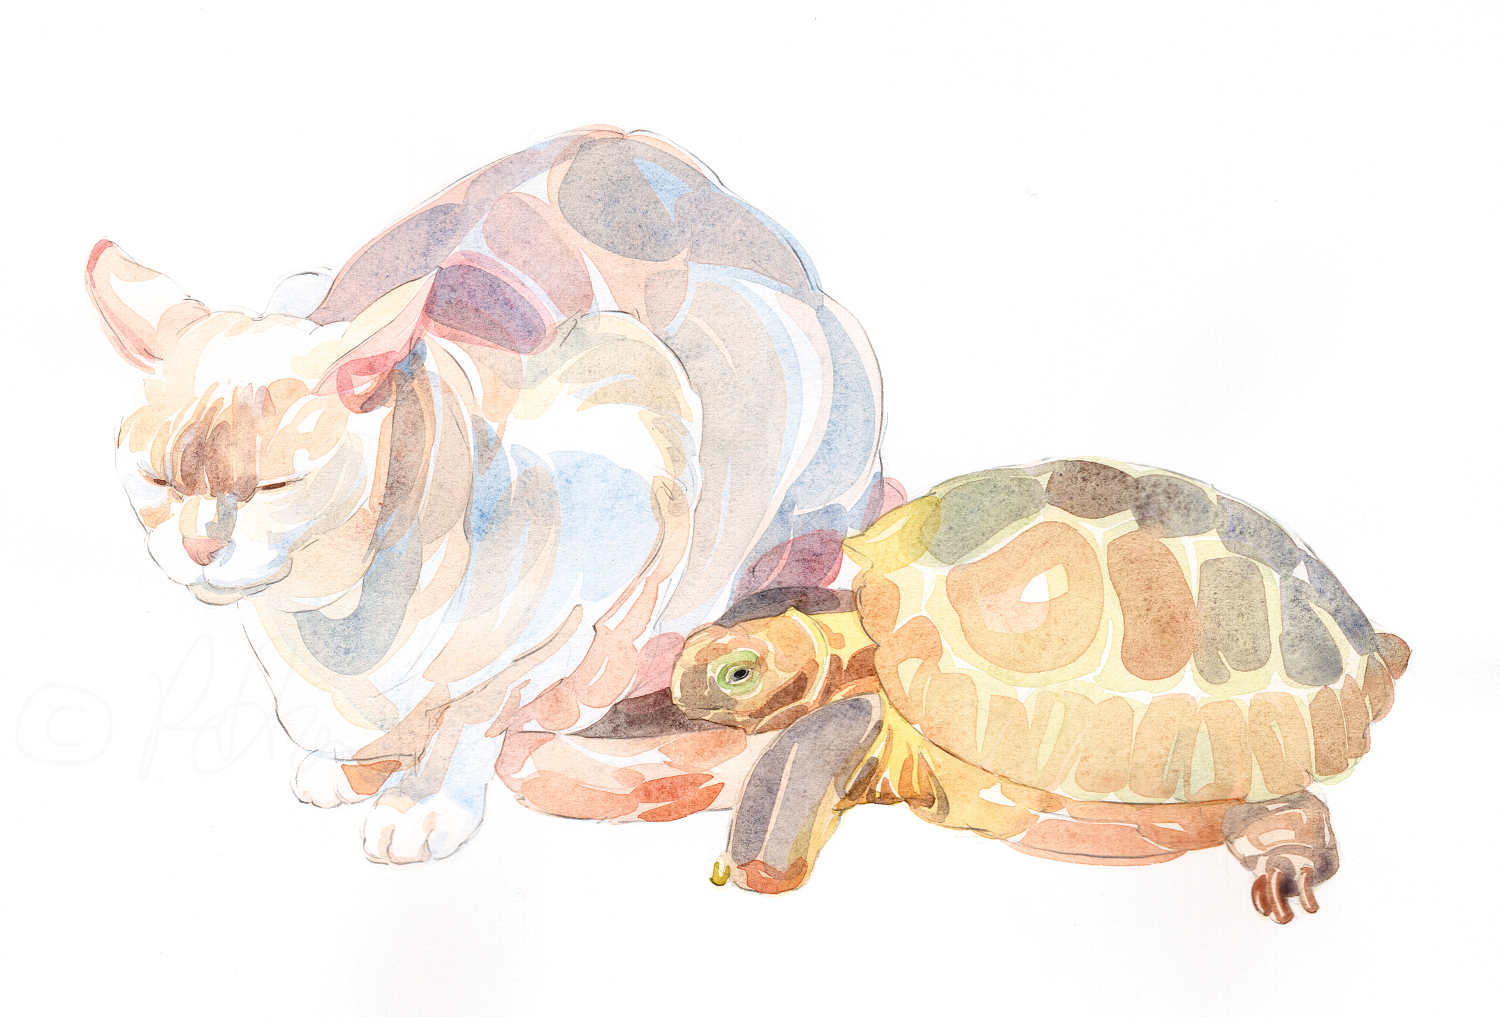 Burmese and Tortoise